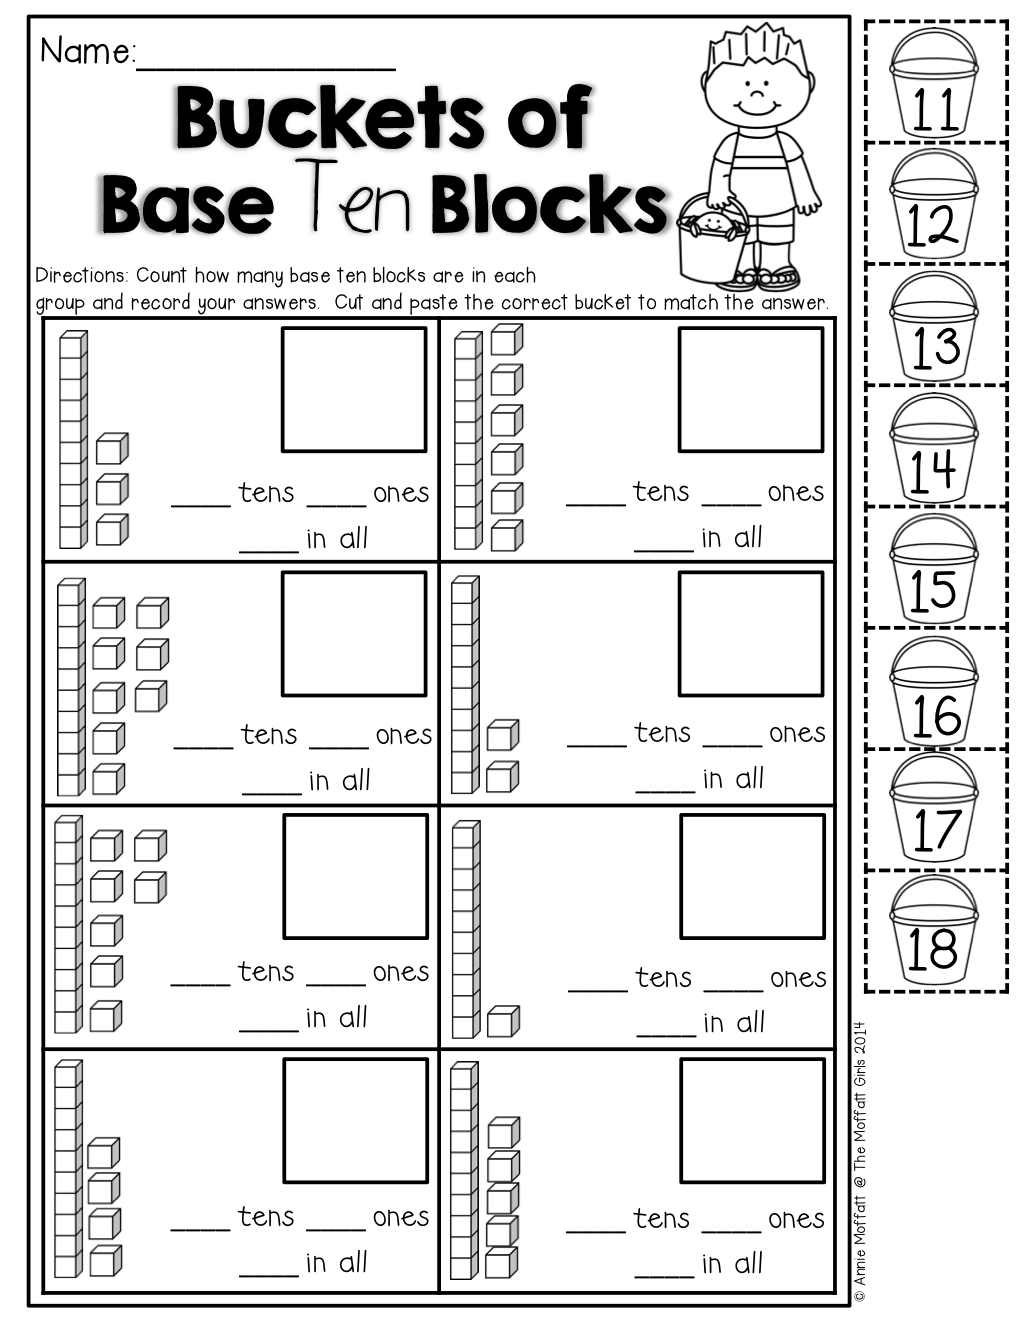 It is an image of Comprehensive Base 10 Blocks Printable